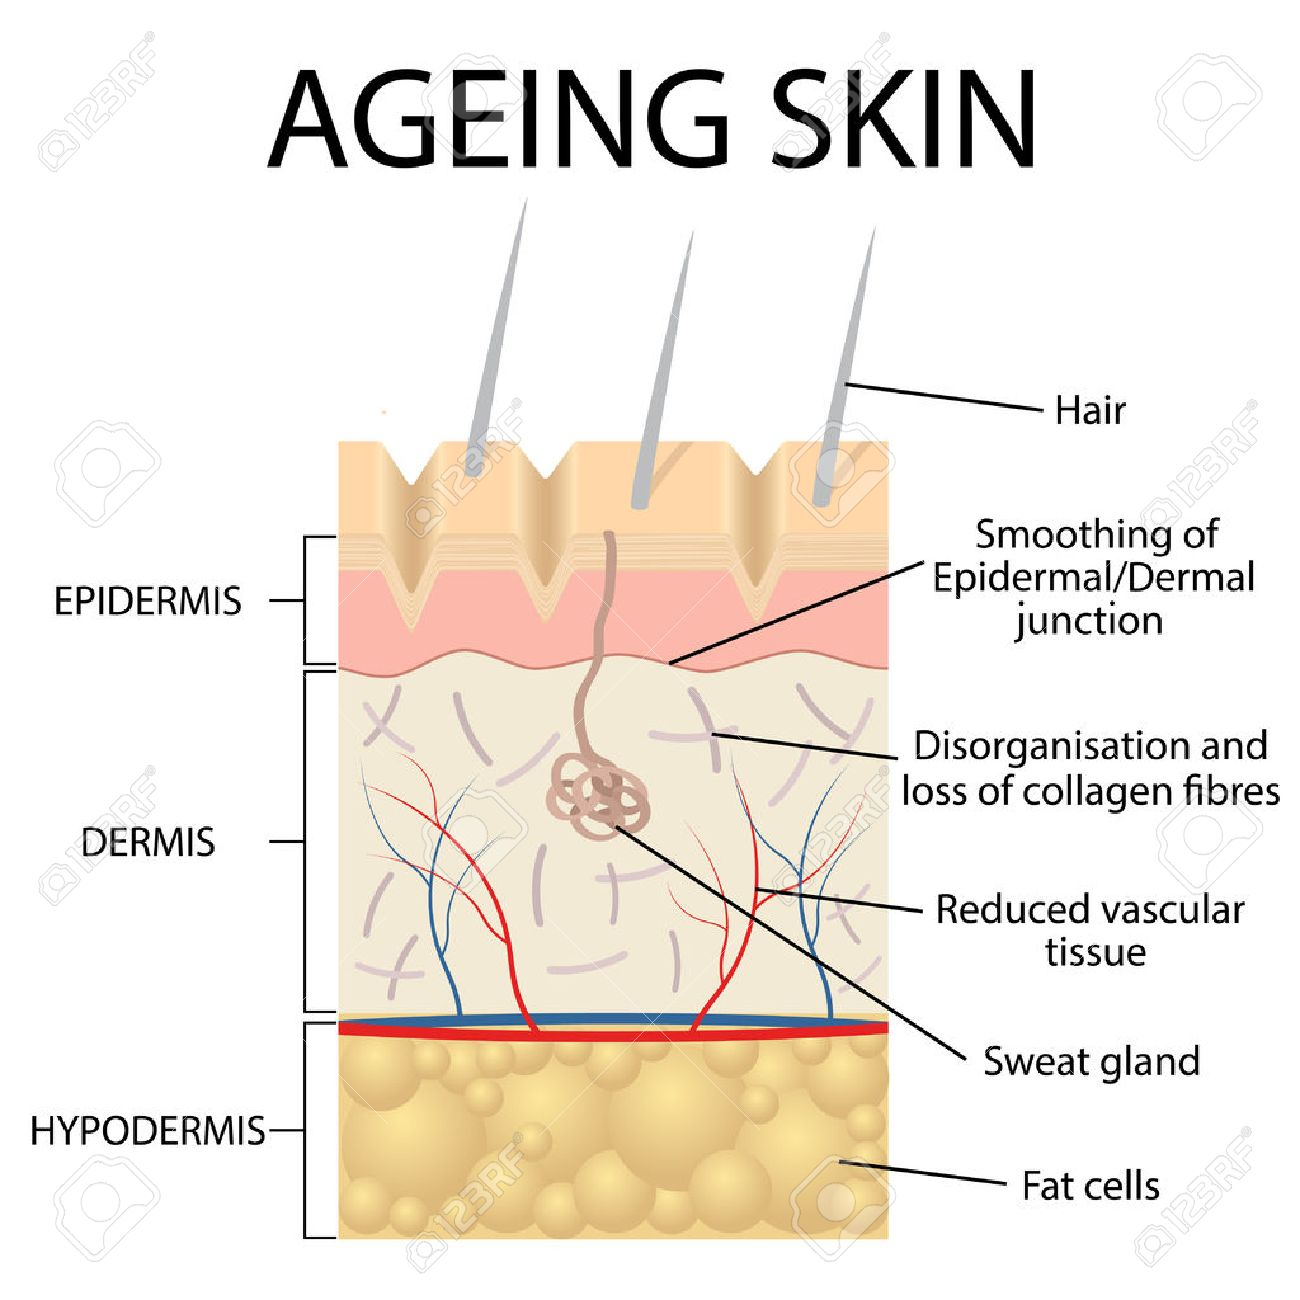 Old Skin Anatomy Characterized By Presence Of Age Spots And Wrinkles ...